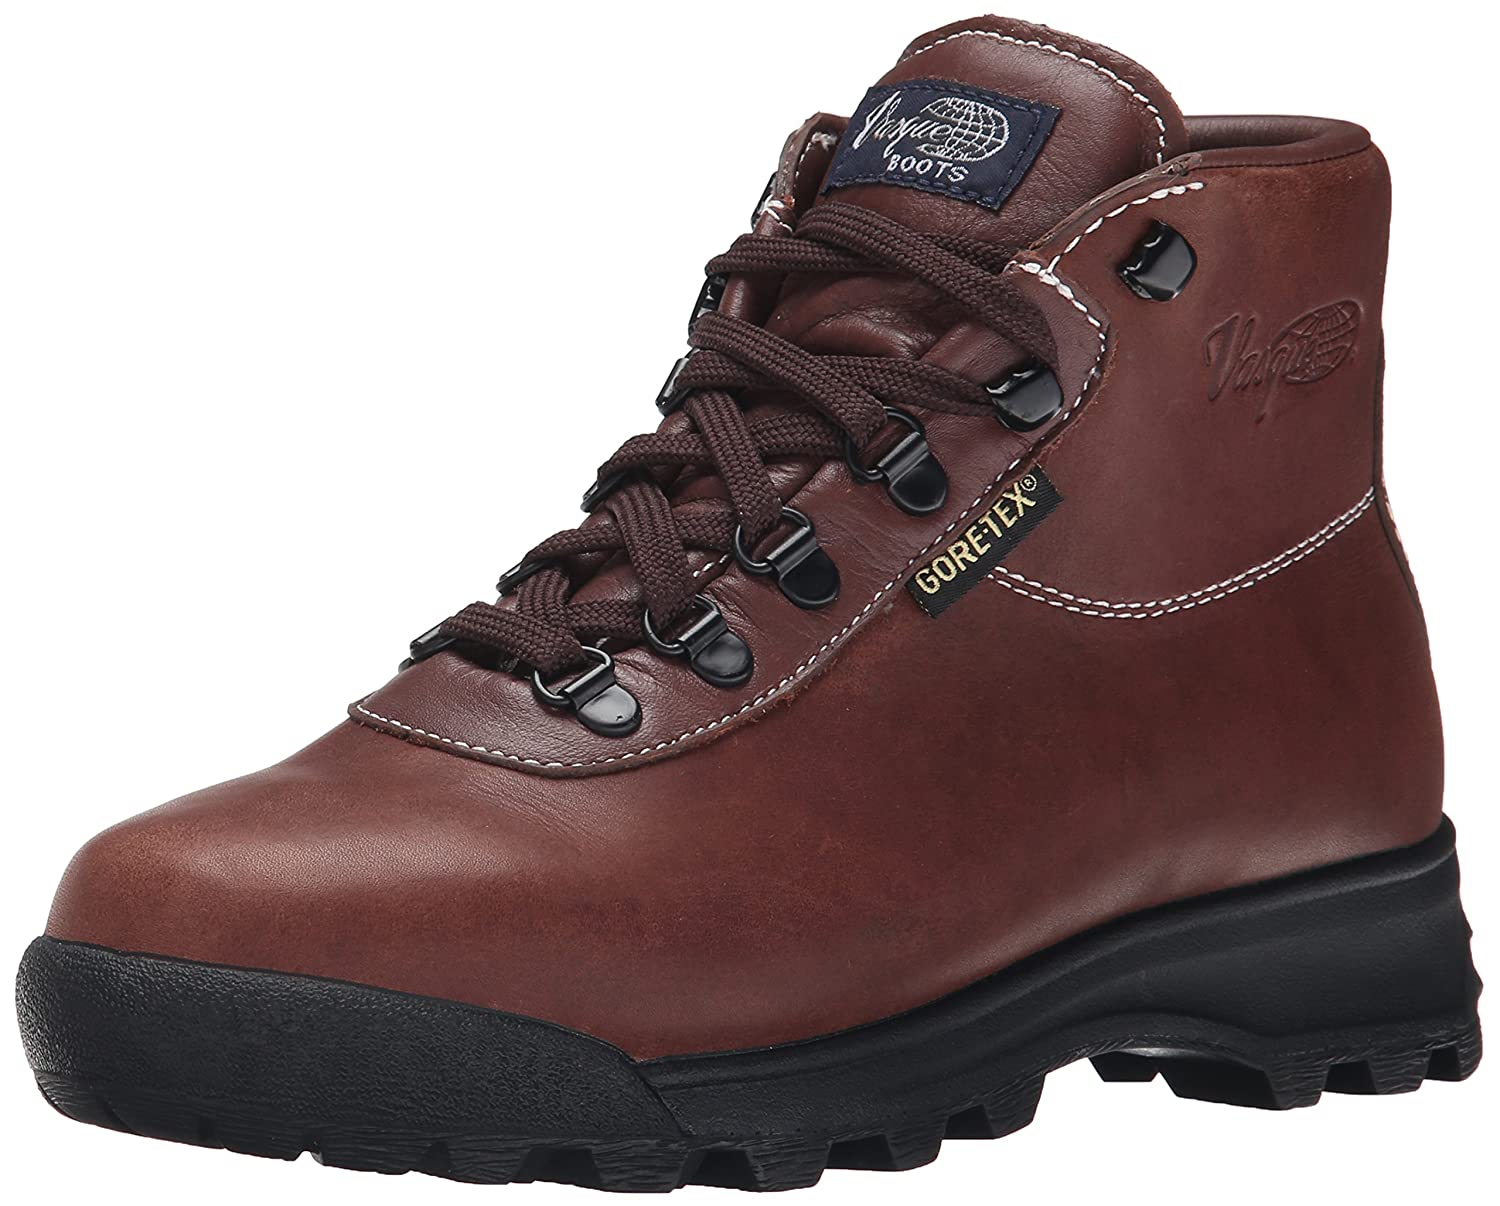 Vasque Women's Sundowner Gore-TEX Backpacking Boot B00TYJXK78 6 B(M) US|Red Oak